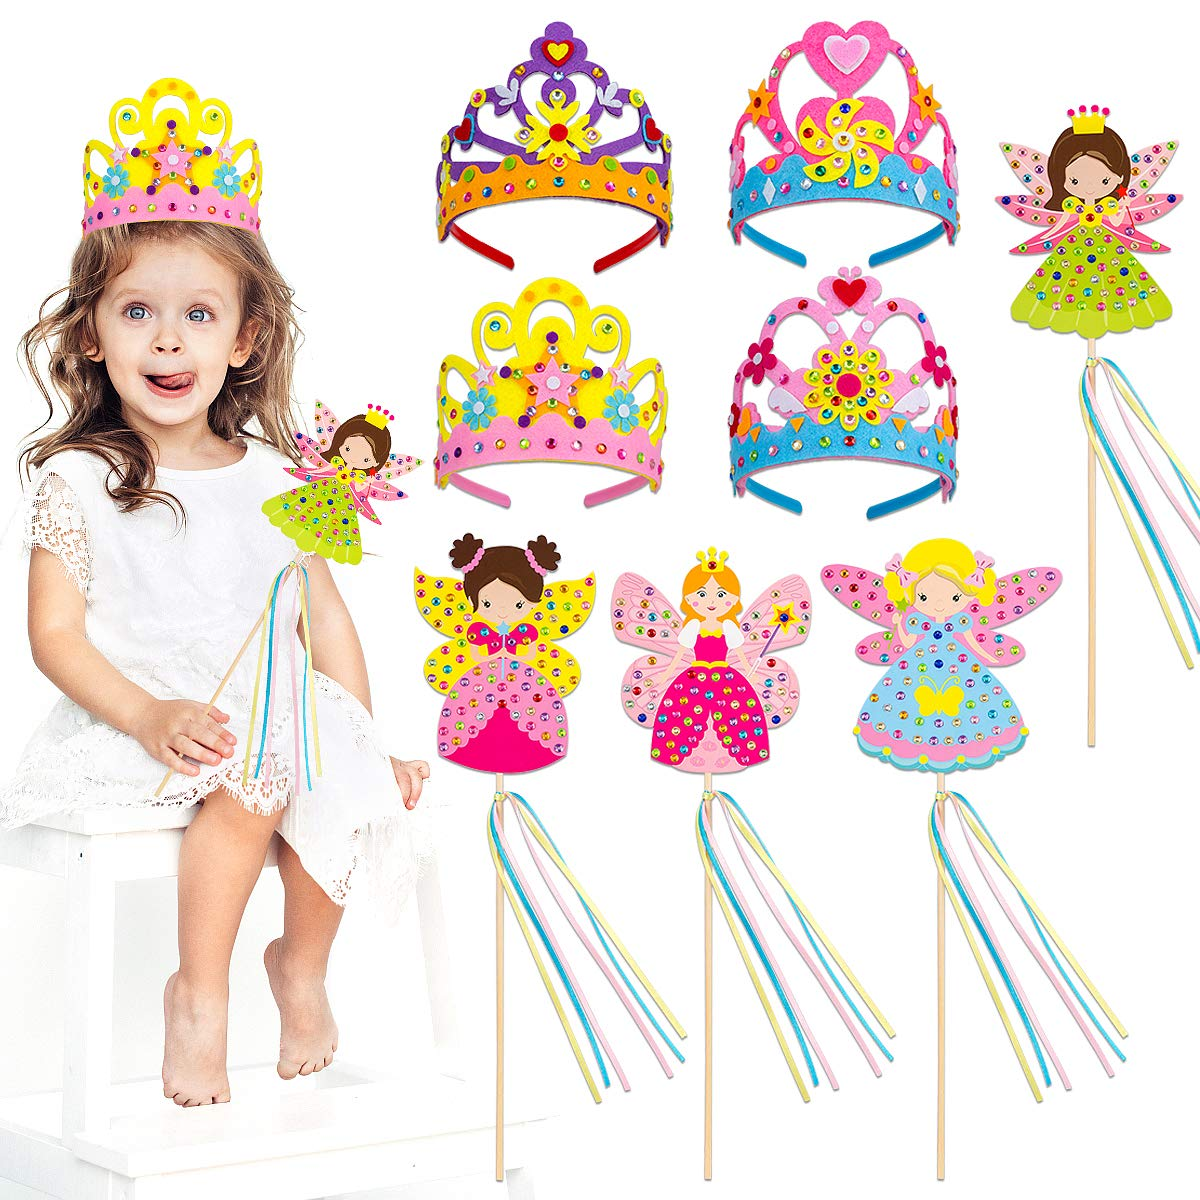 Make Your Own Princess Crown and Fairy Magic Wands Girls Party Favors PARBEE 8 Set Princess Tiara and Wand DIY Crafts